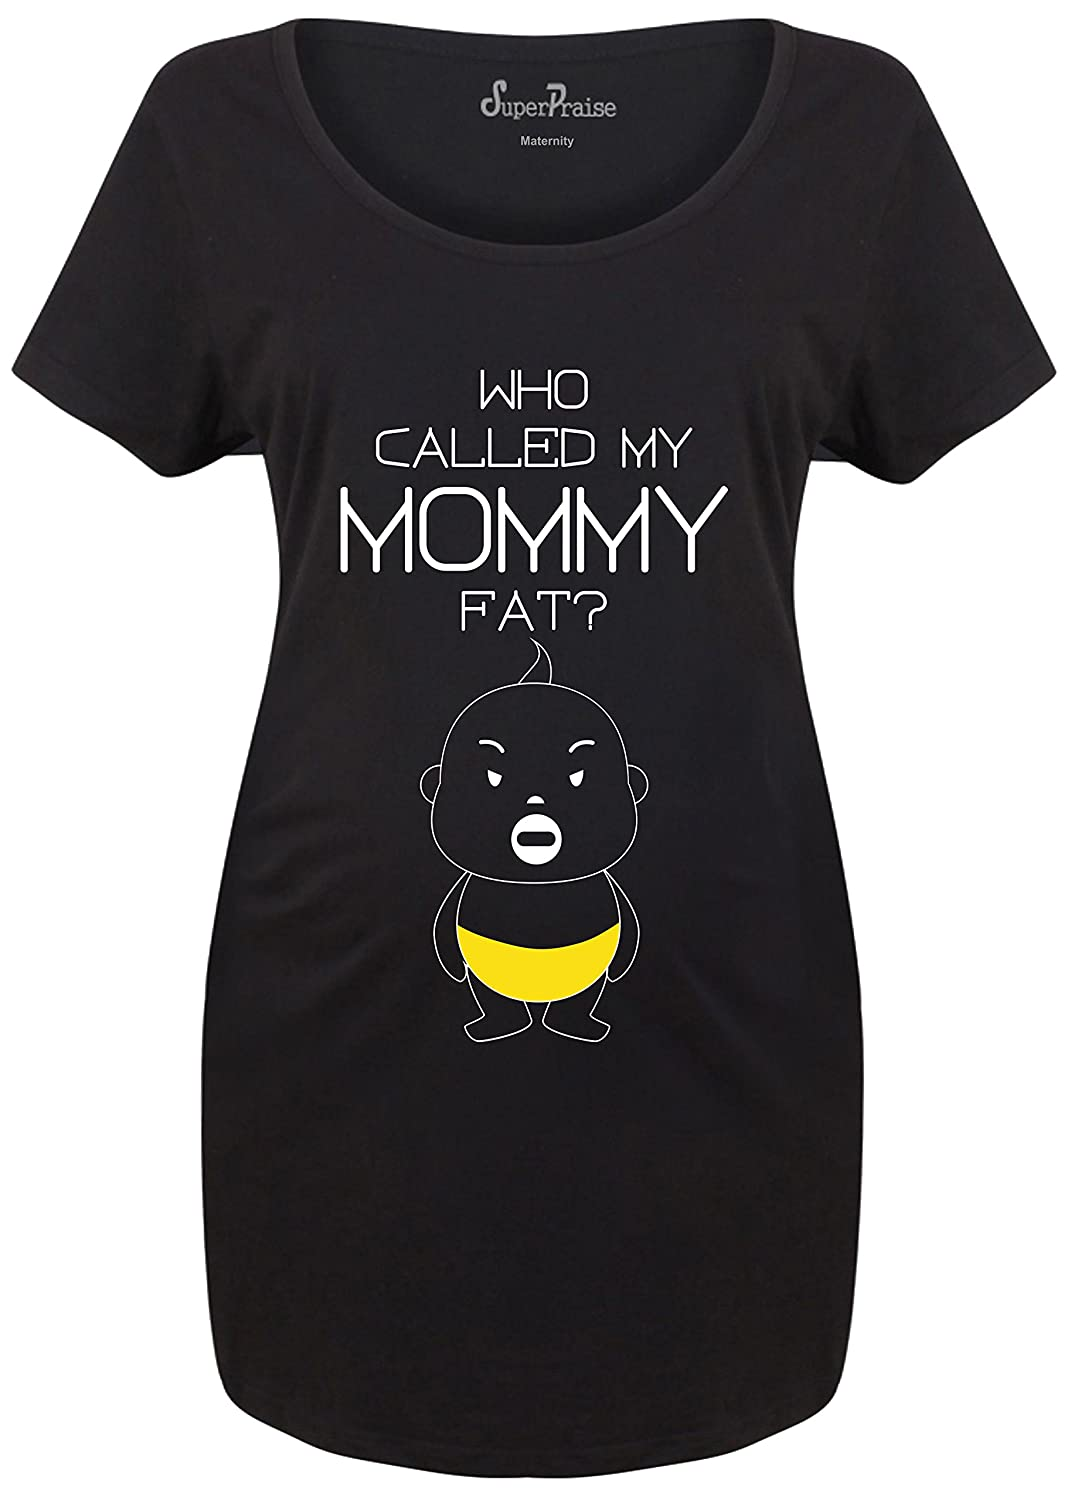 SuperPraise Called My Mommy Fat Funny Slogan Joke Pregnancy Women Maternity T Shirt Matenity T Shirt -S To 3XL SP031117MTA456